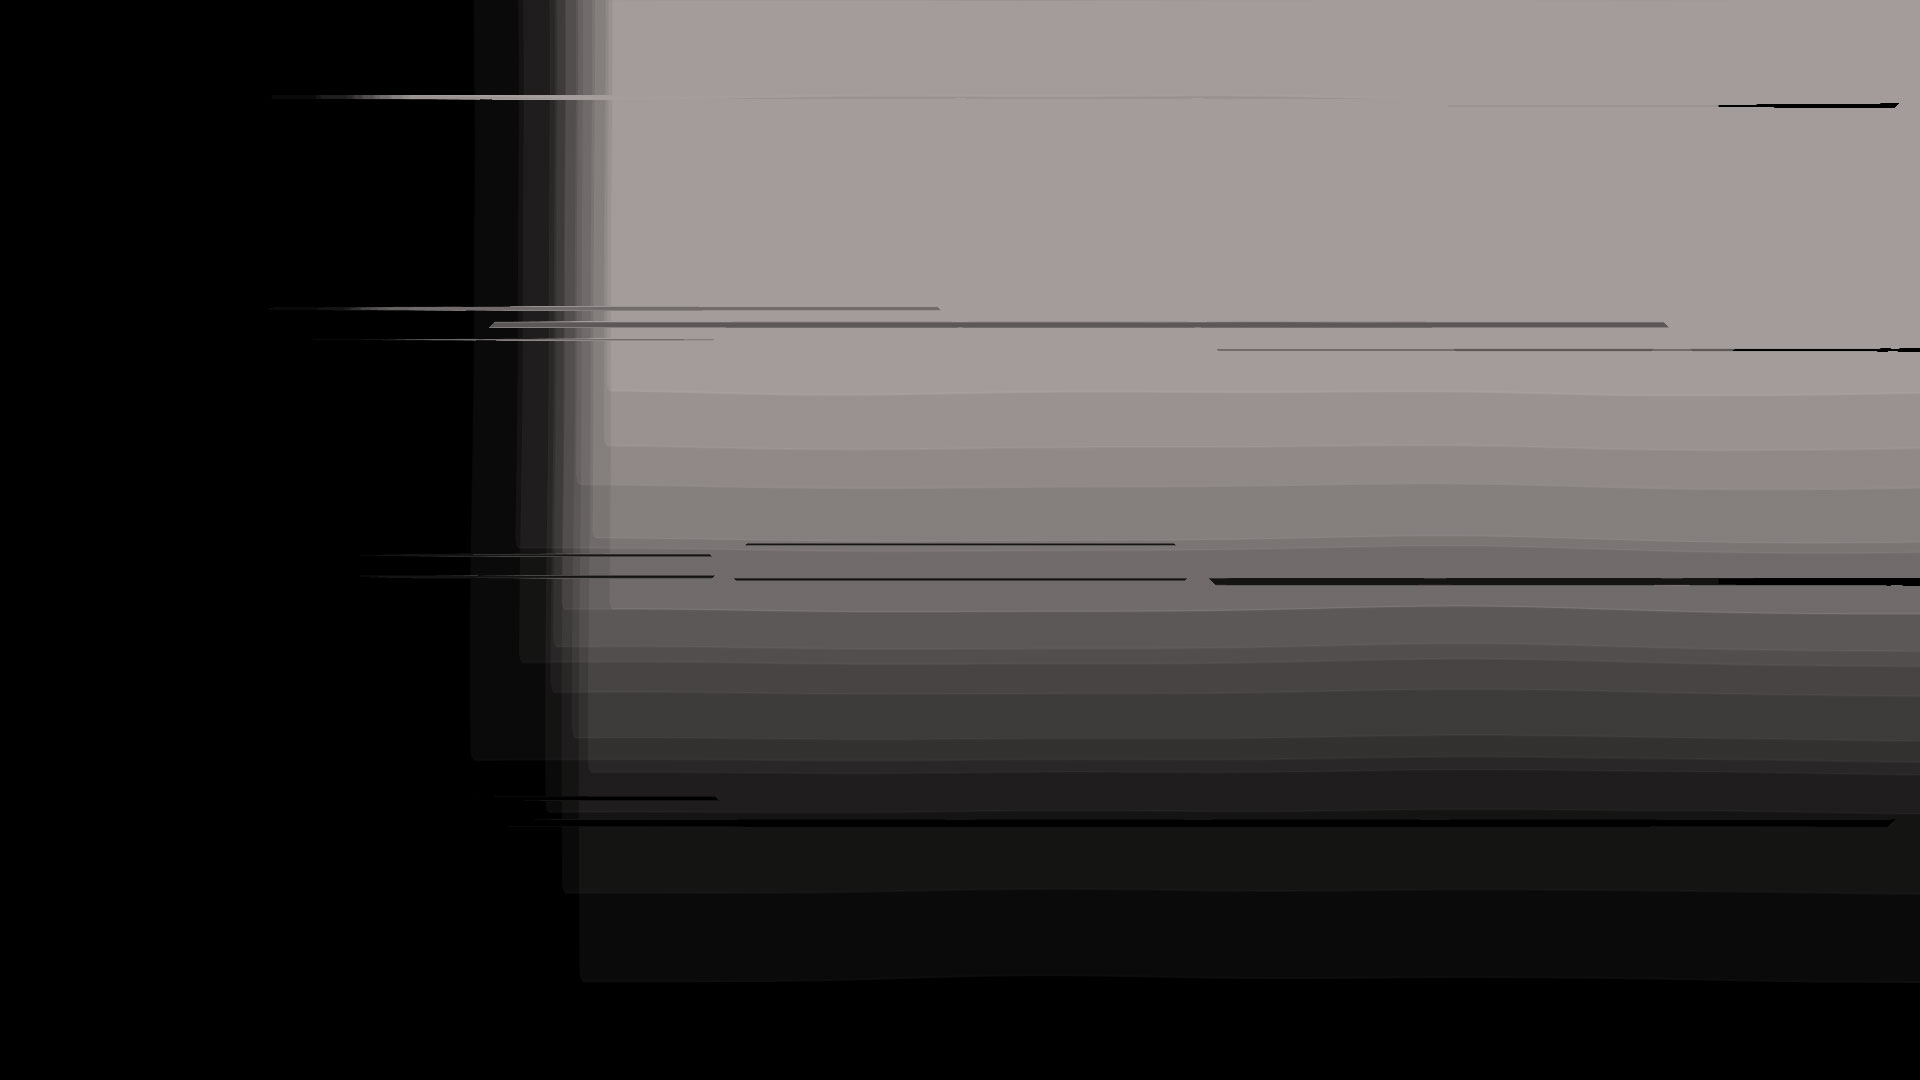 Abstract black and white structure with glitch effect.